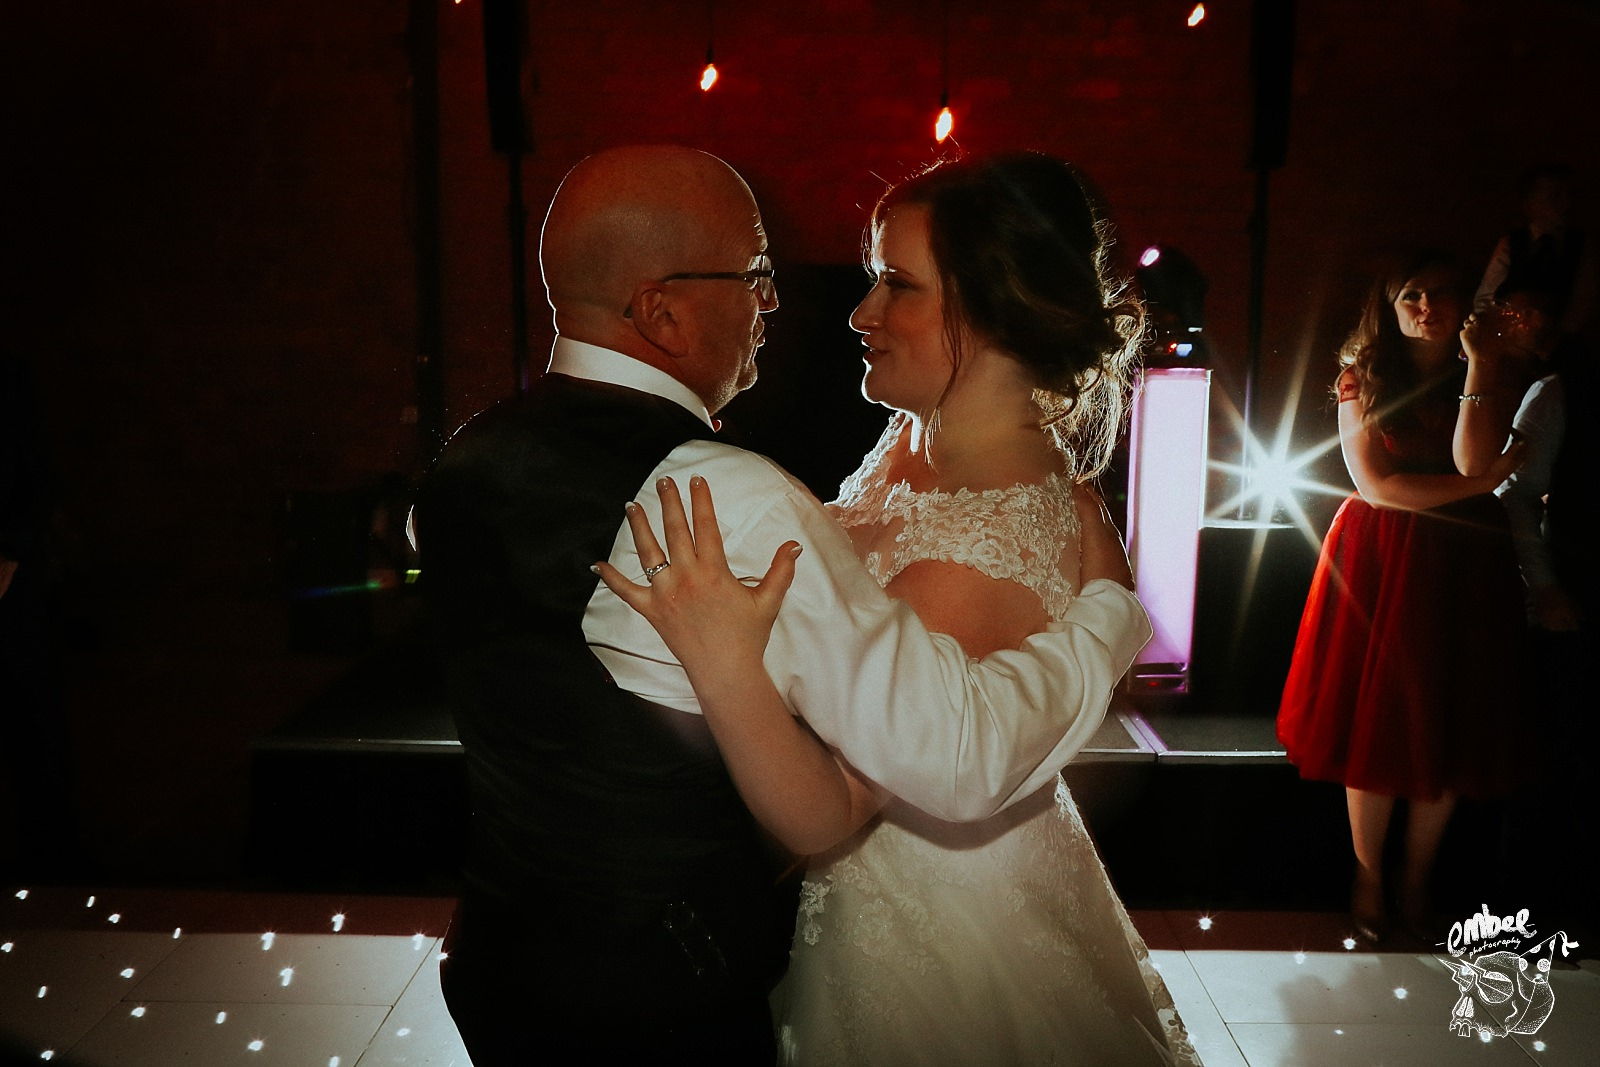 dad and daughter first dance